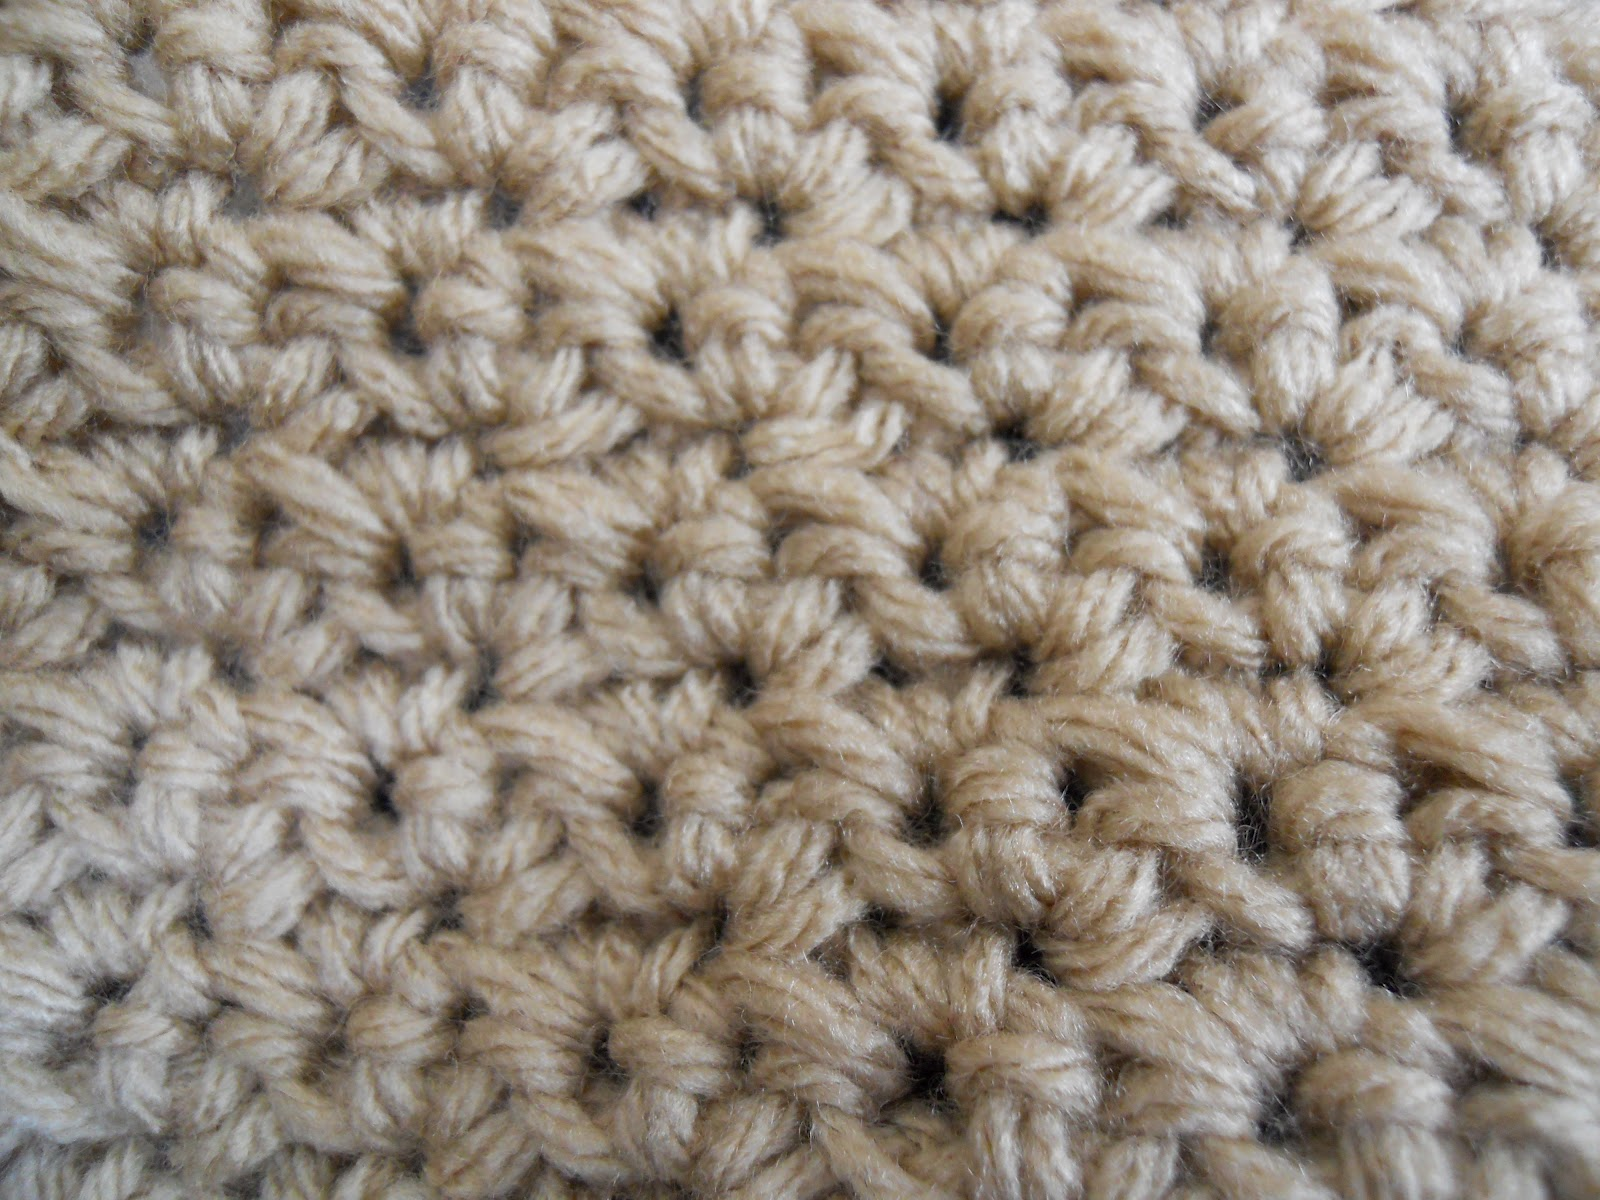 Crochet Stitches Tr : Collection of Crochet Stitches: Stitch Combination: Grit Stitch